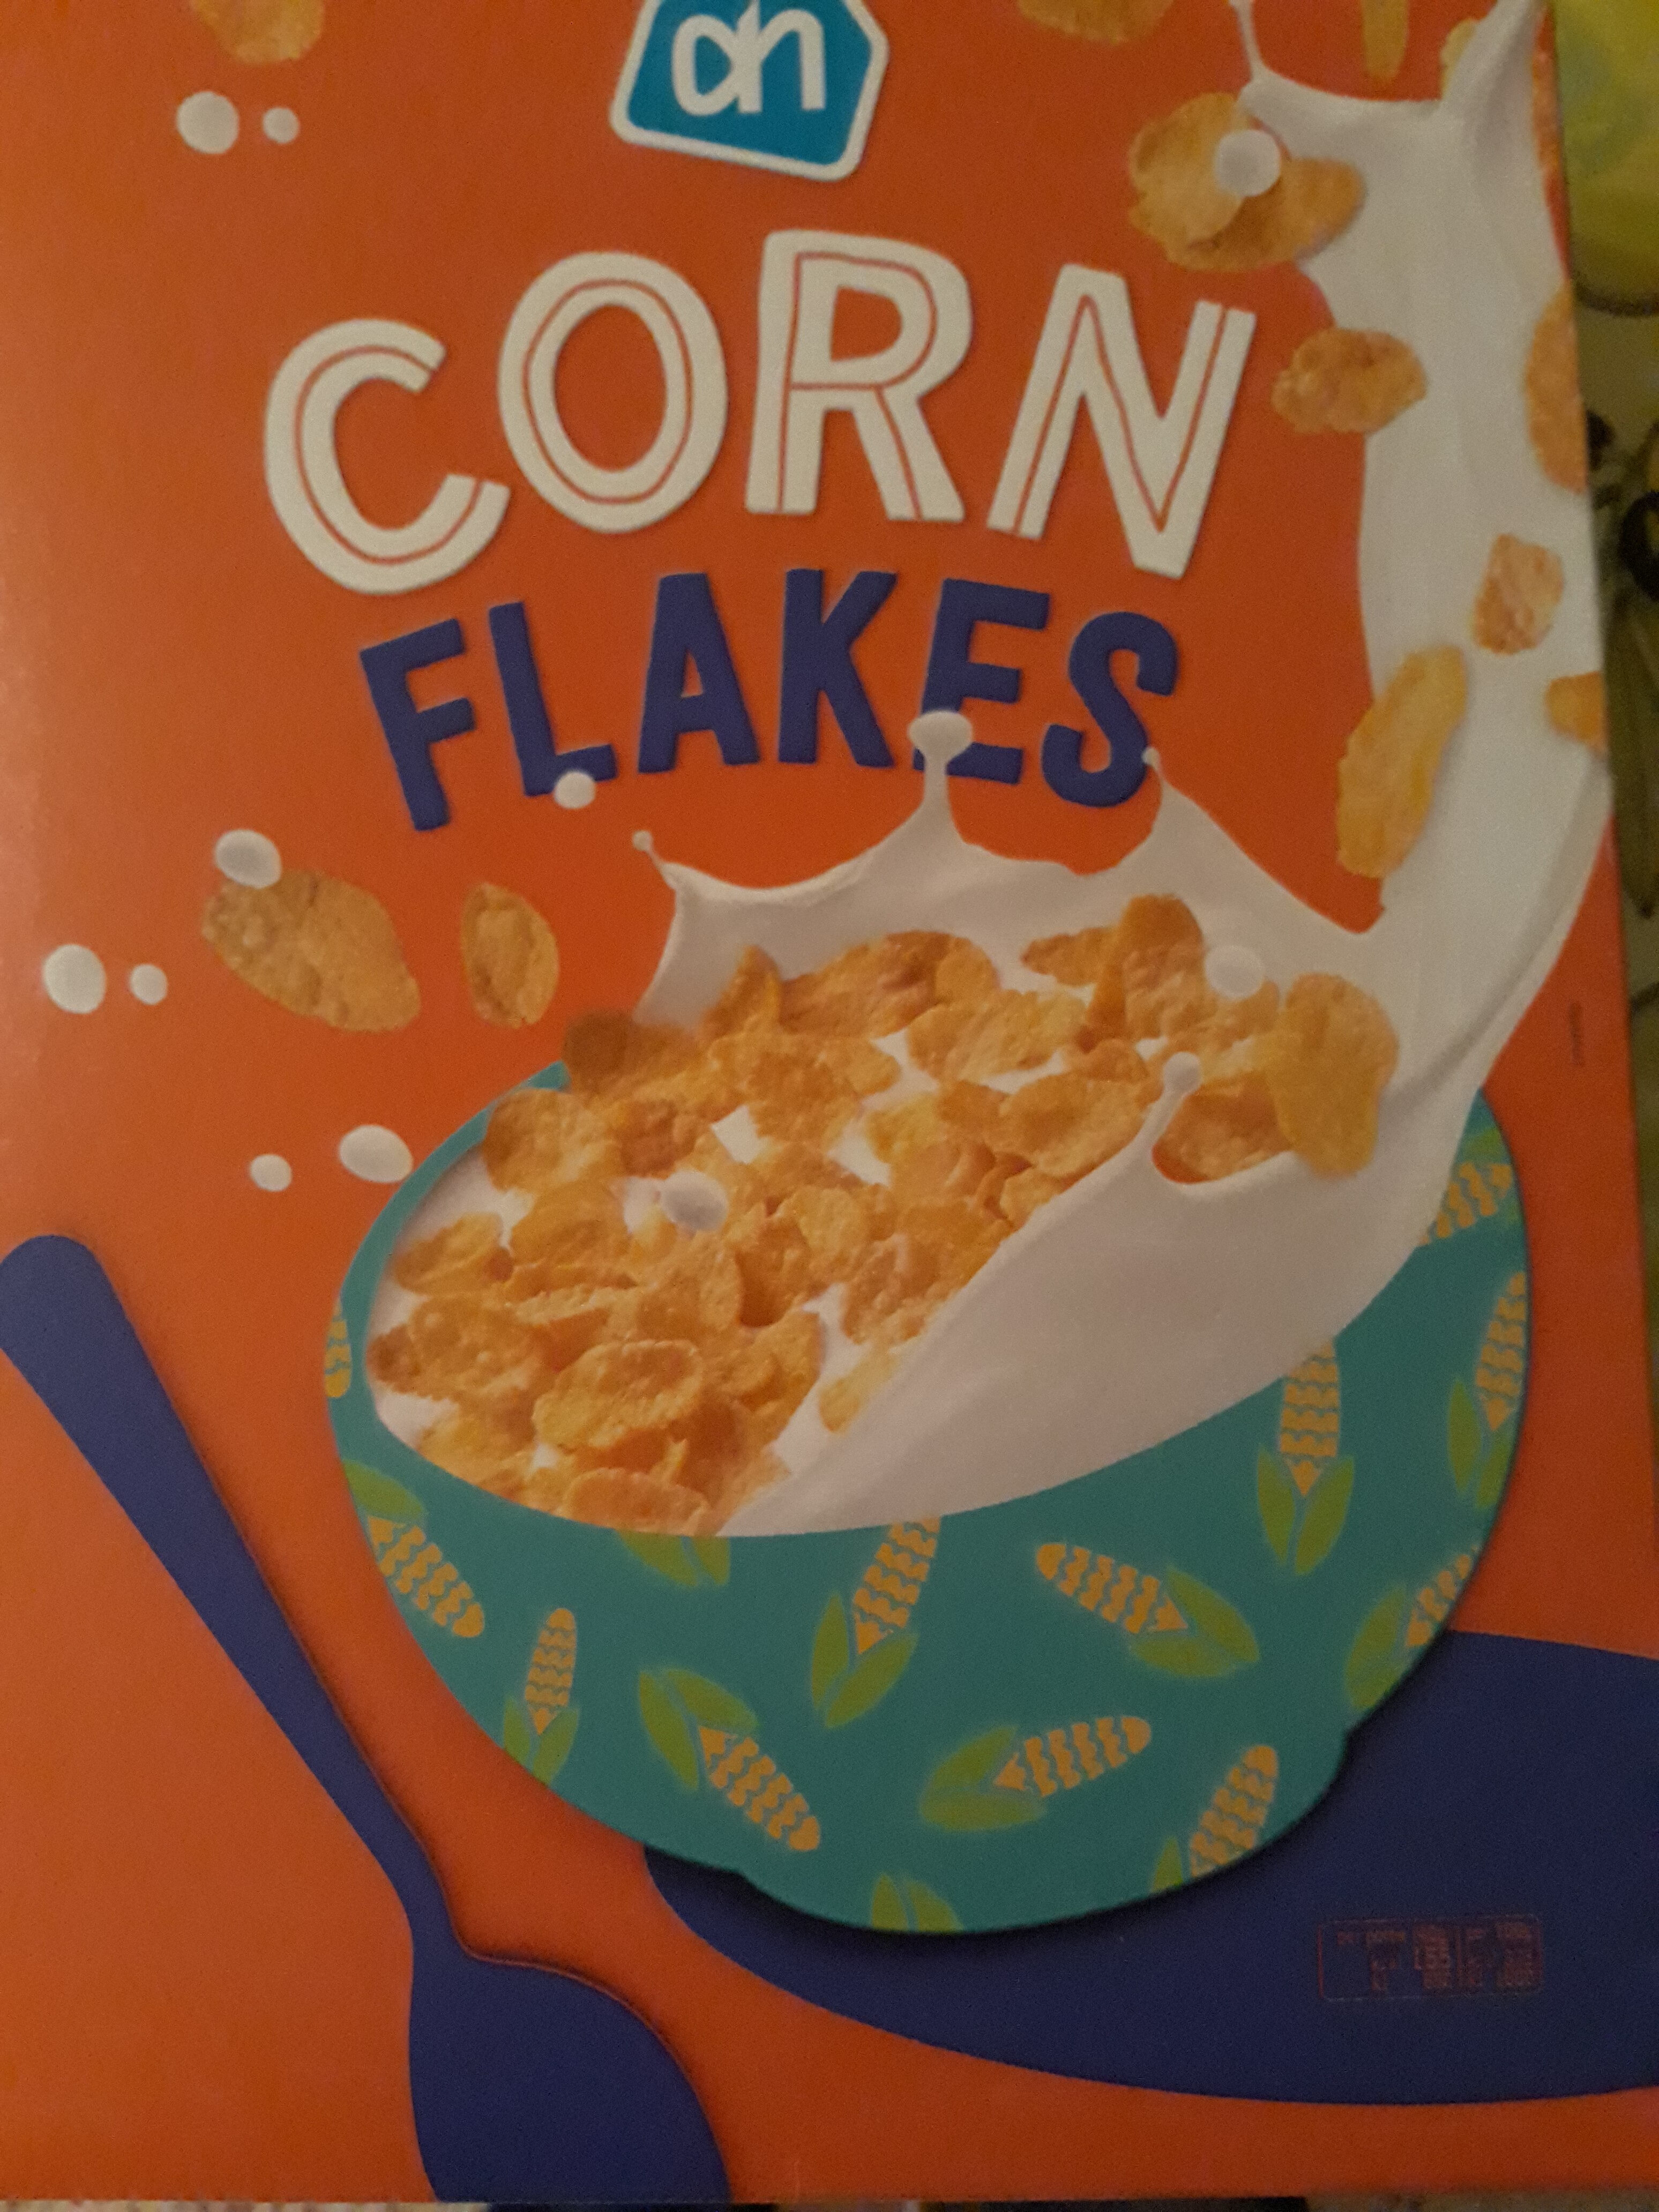 cornflakes - Product